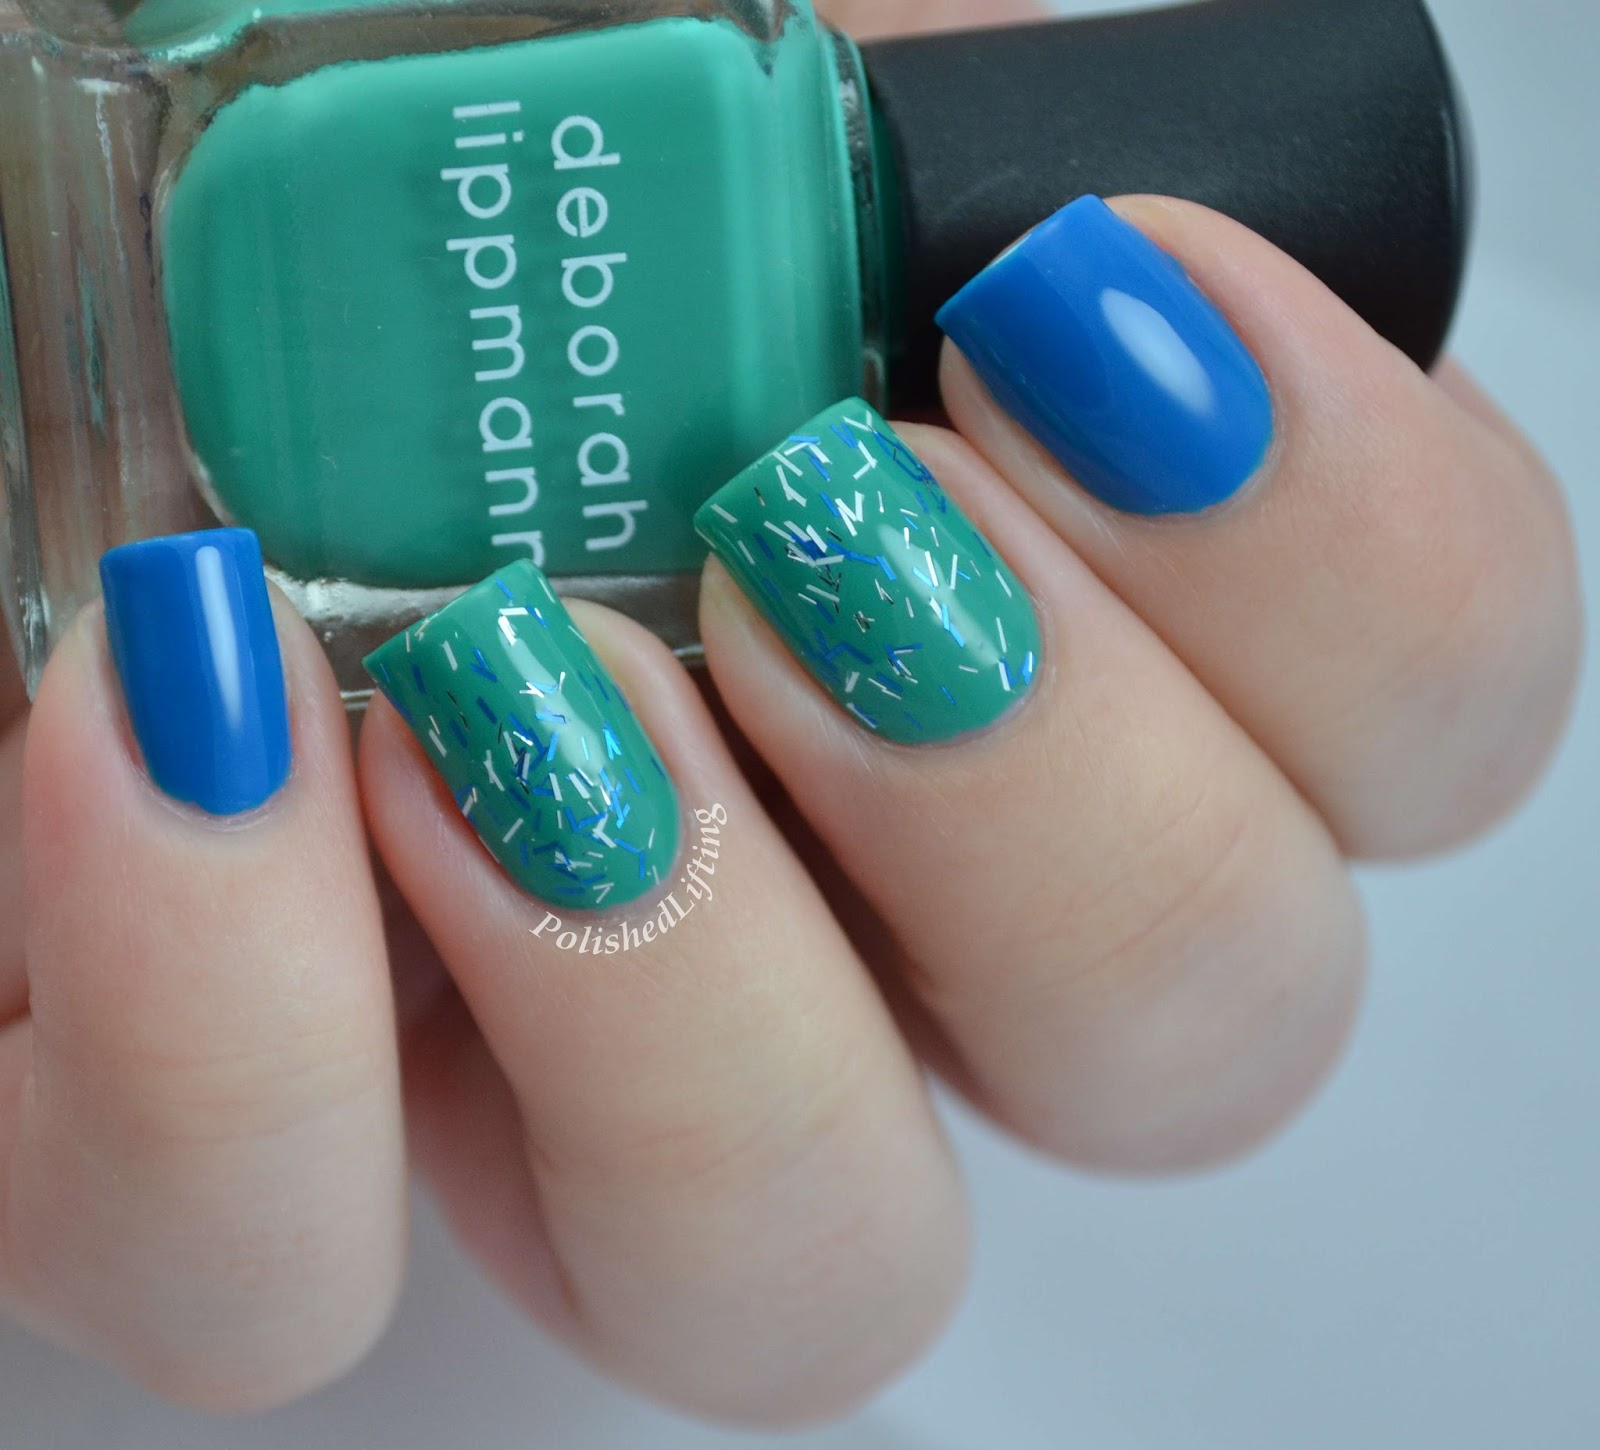 Deborah Lippmann She Drives Me Crazy Video Killed the Radio Star Forever 21 nail polish